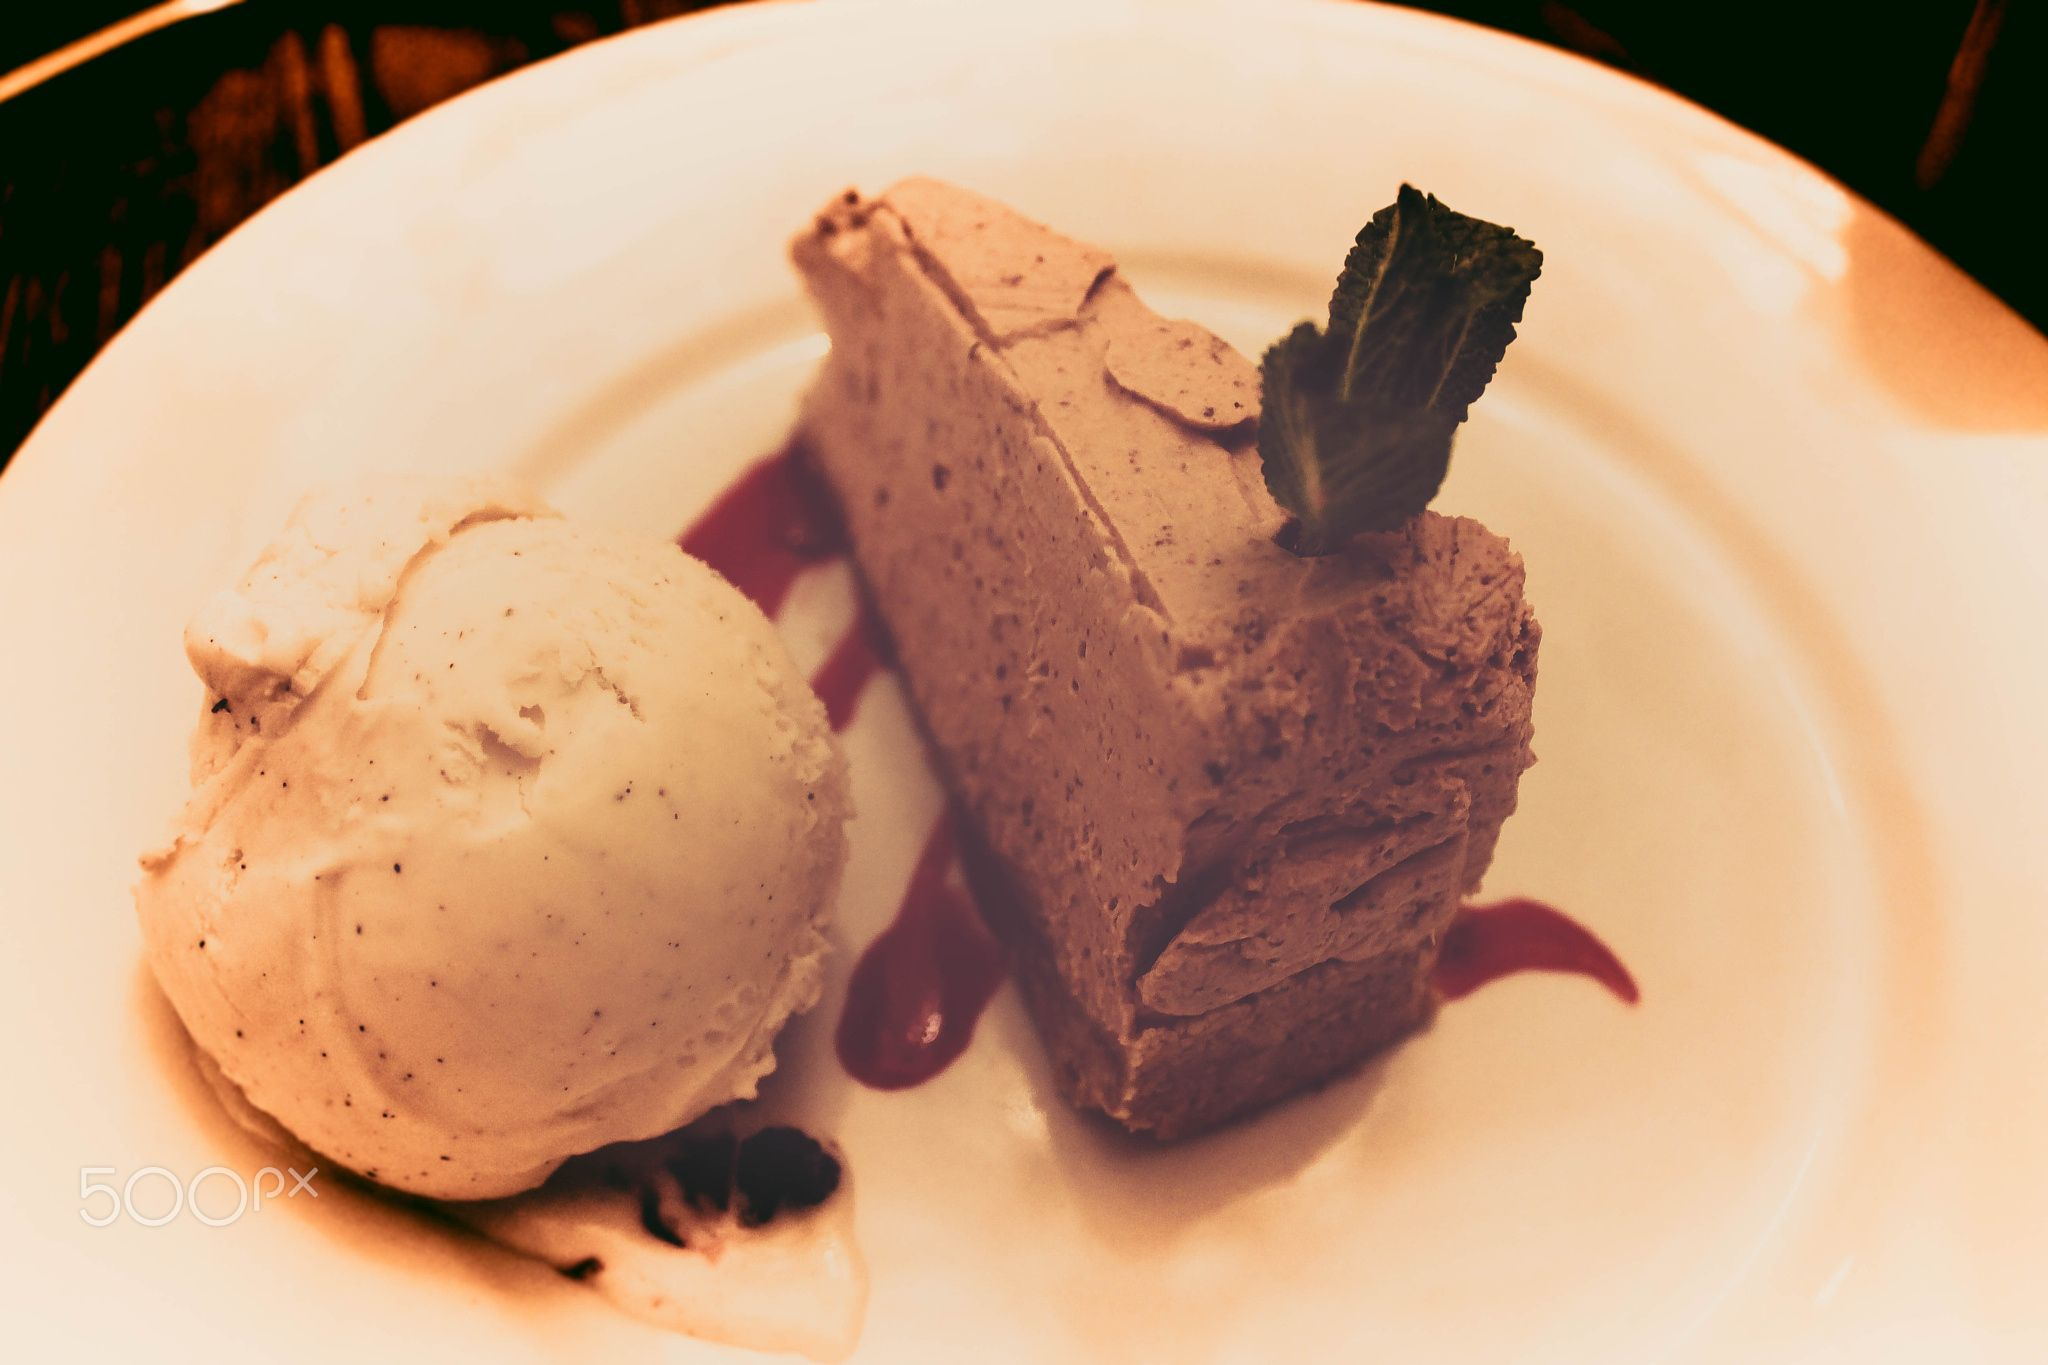 Sweet Life - Have a little chocolate cheesecake with ginger biscuit and nice ice cream on side. It was really nice.